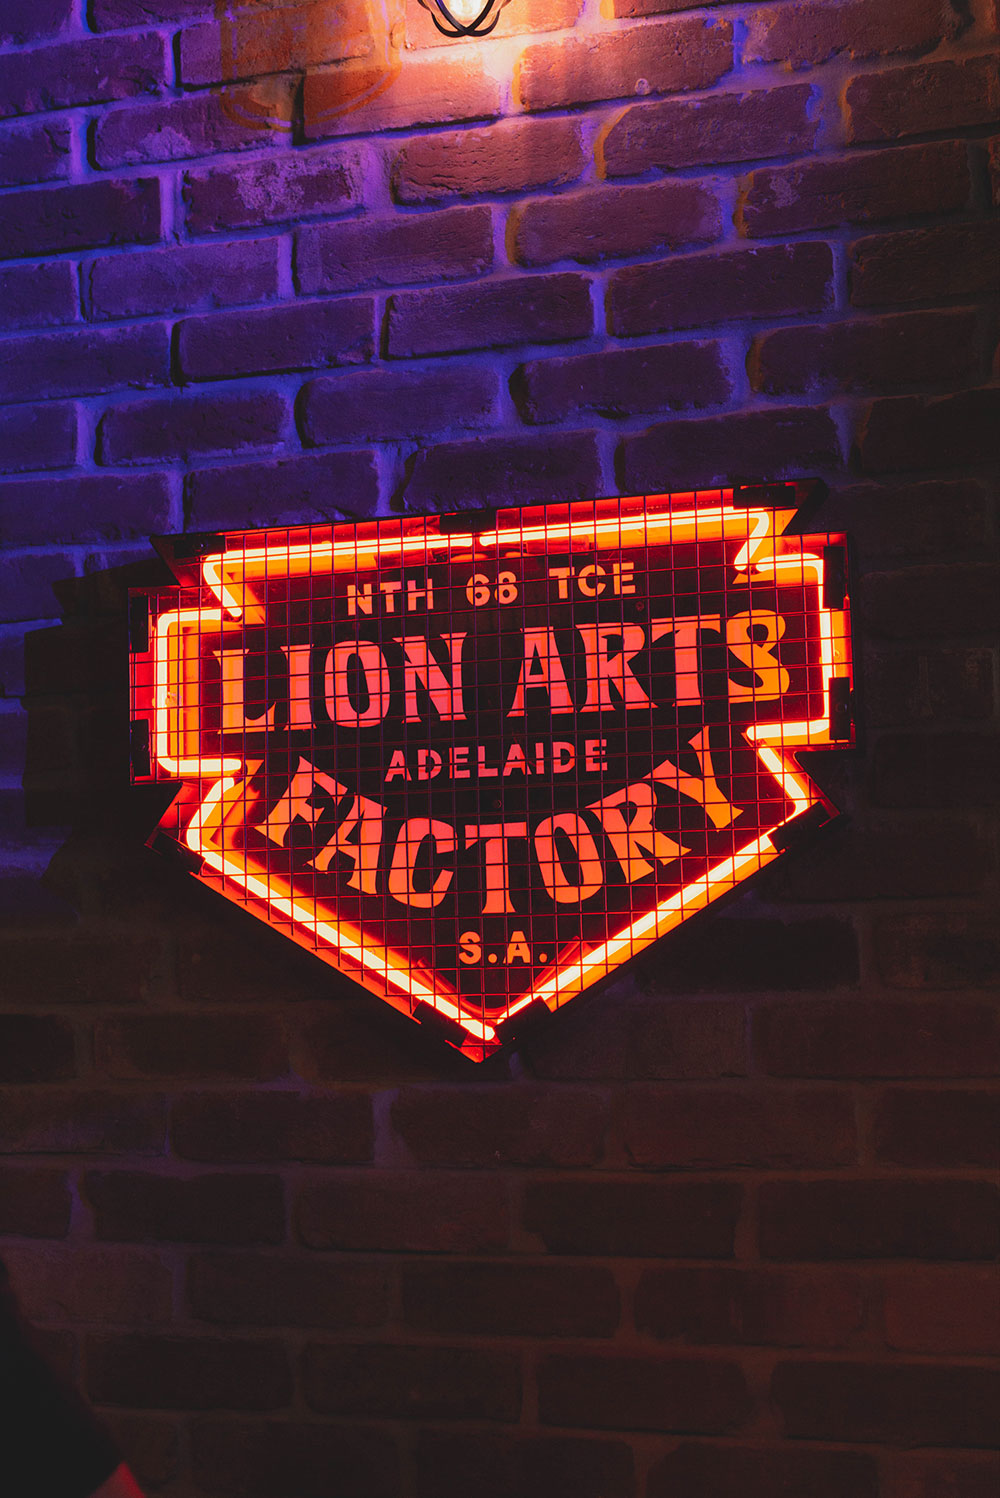 Lion Arts Factory image